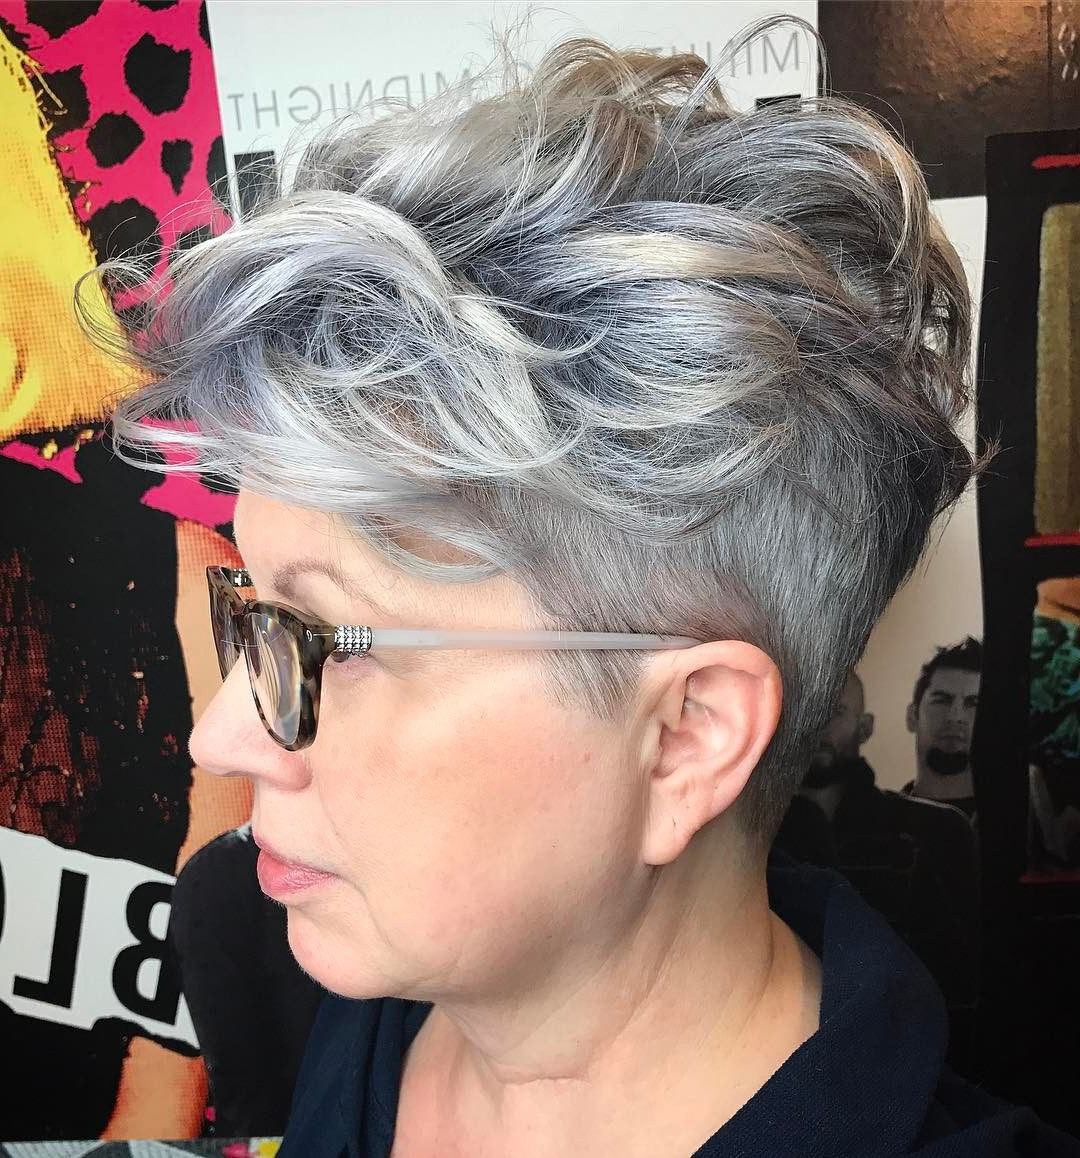 90 Classy And Simple Short Hairstyles For Women Over 50 In 2018 Inside Pixie Undercut Hairstyles For Women Over (View 10 of 20)